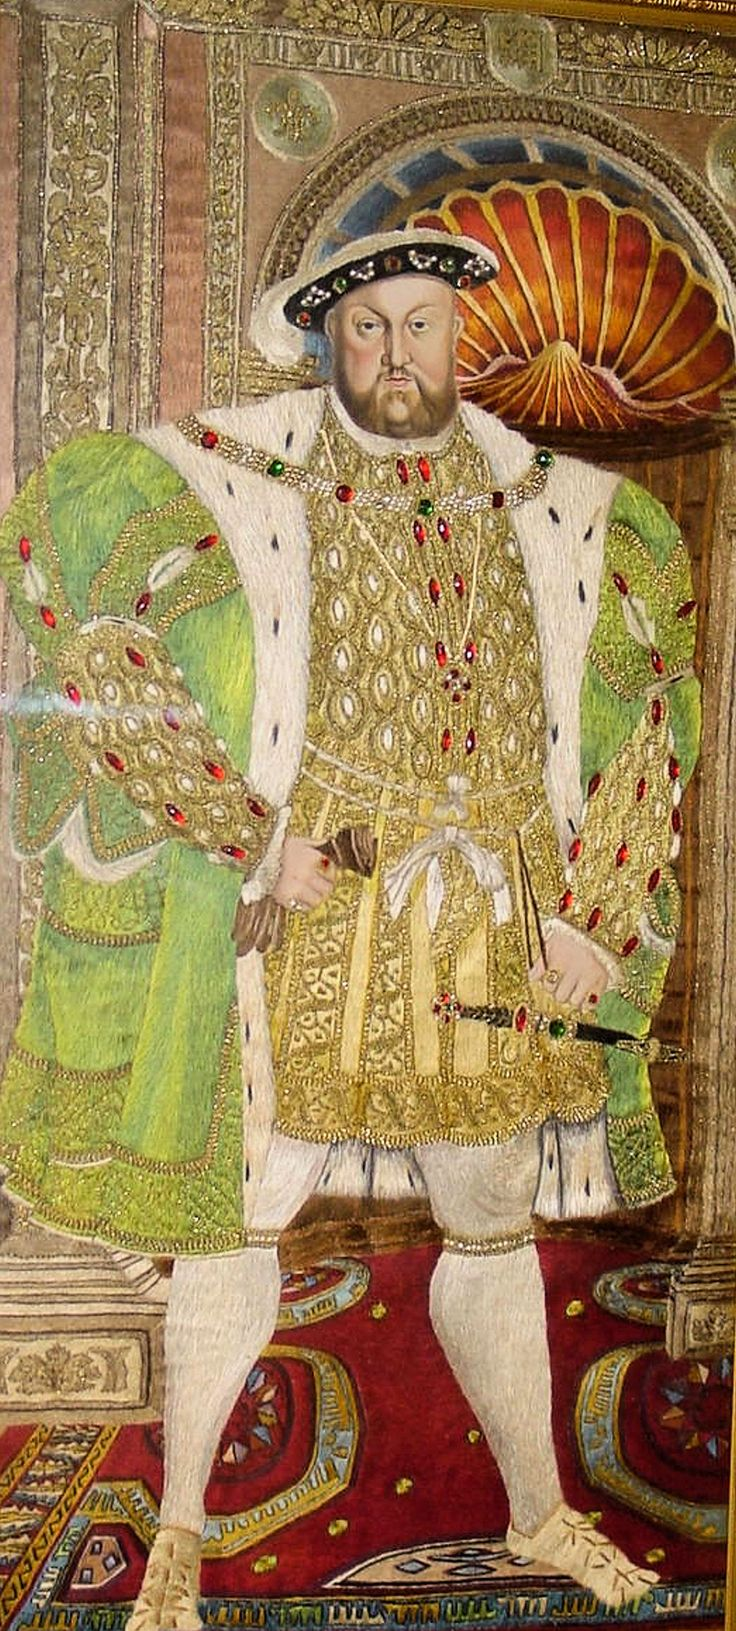 17 best images about ~royalty henry viii s time henry viii tapestry courtesy of dover town council alan sencicle part of thomas tallid s duties